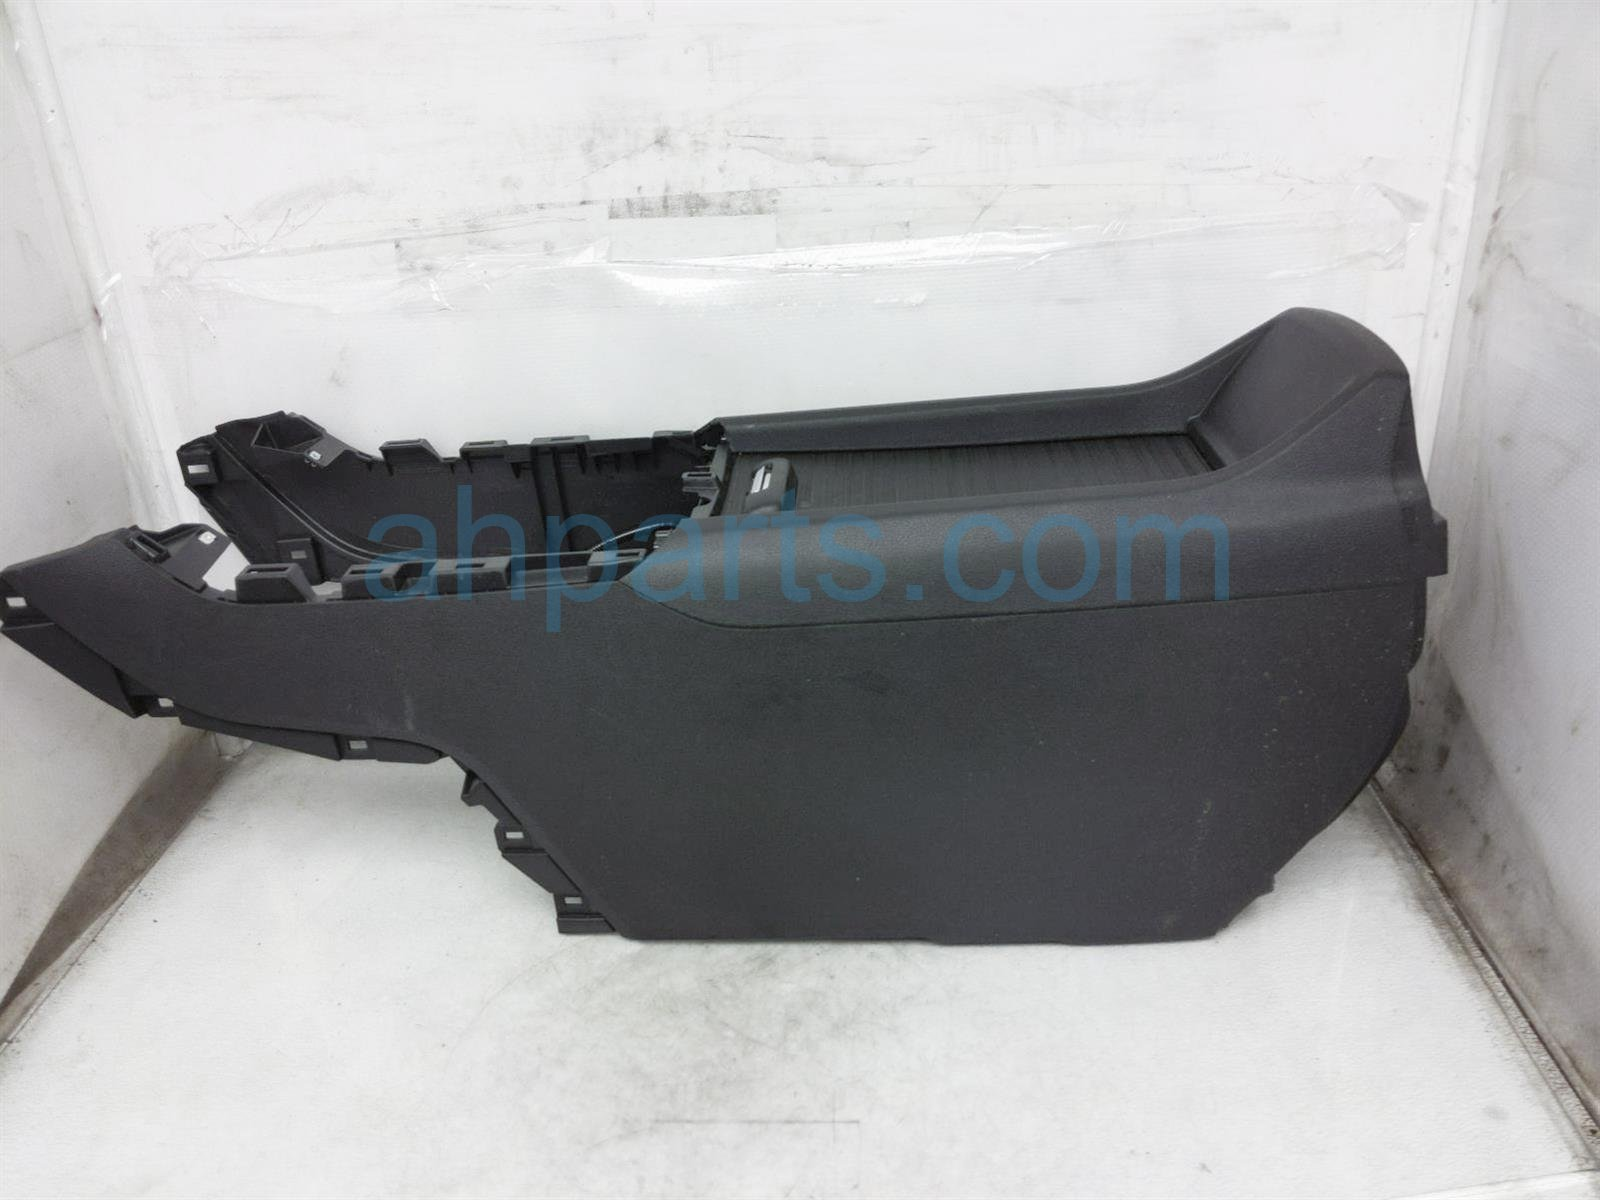 2019 Honda Passport Center Console Box Assy   Black 83413 TG7 A11 Replacement